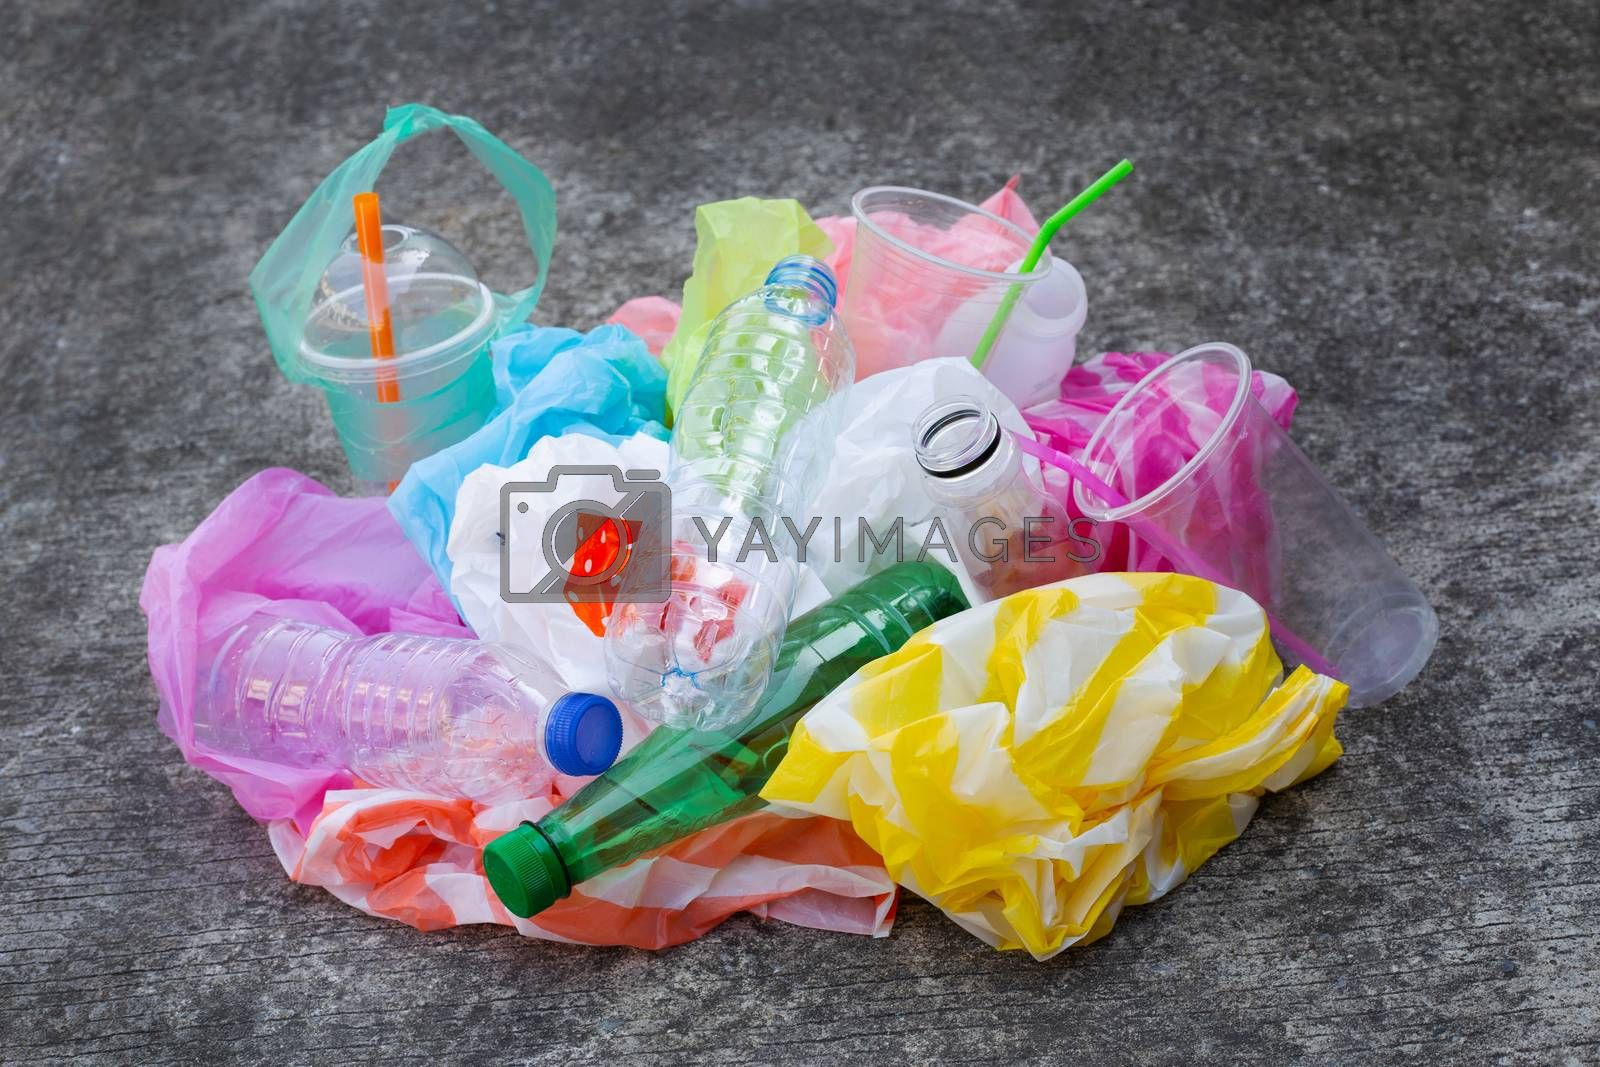 Colorful plastic waste, bags, cups, bottles, straws on cement floor background.